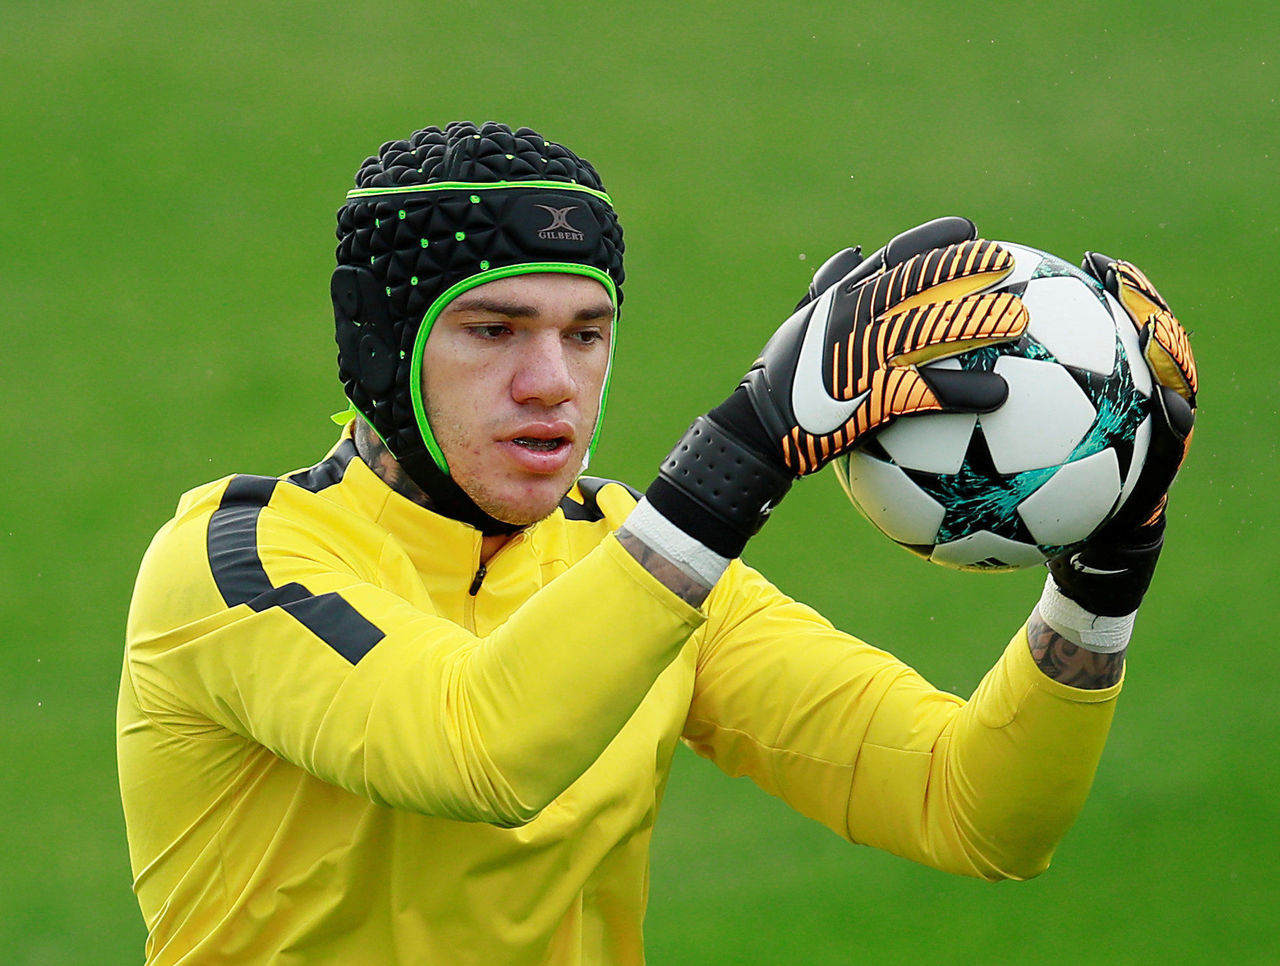 Ederson returns to Manchester City training with protective